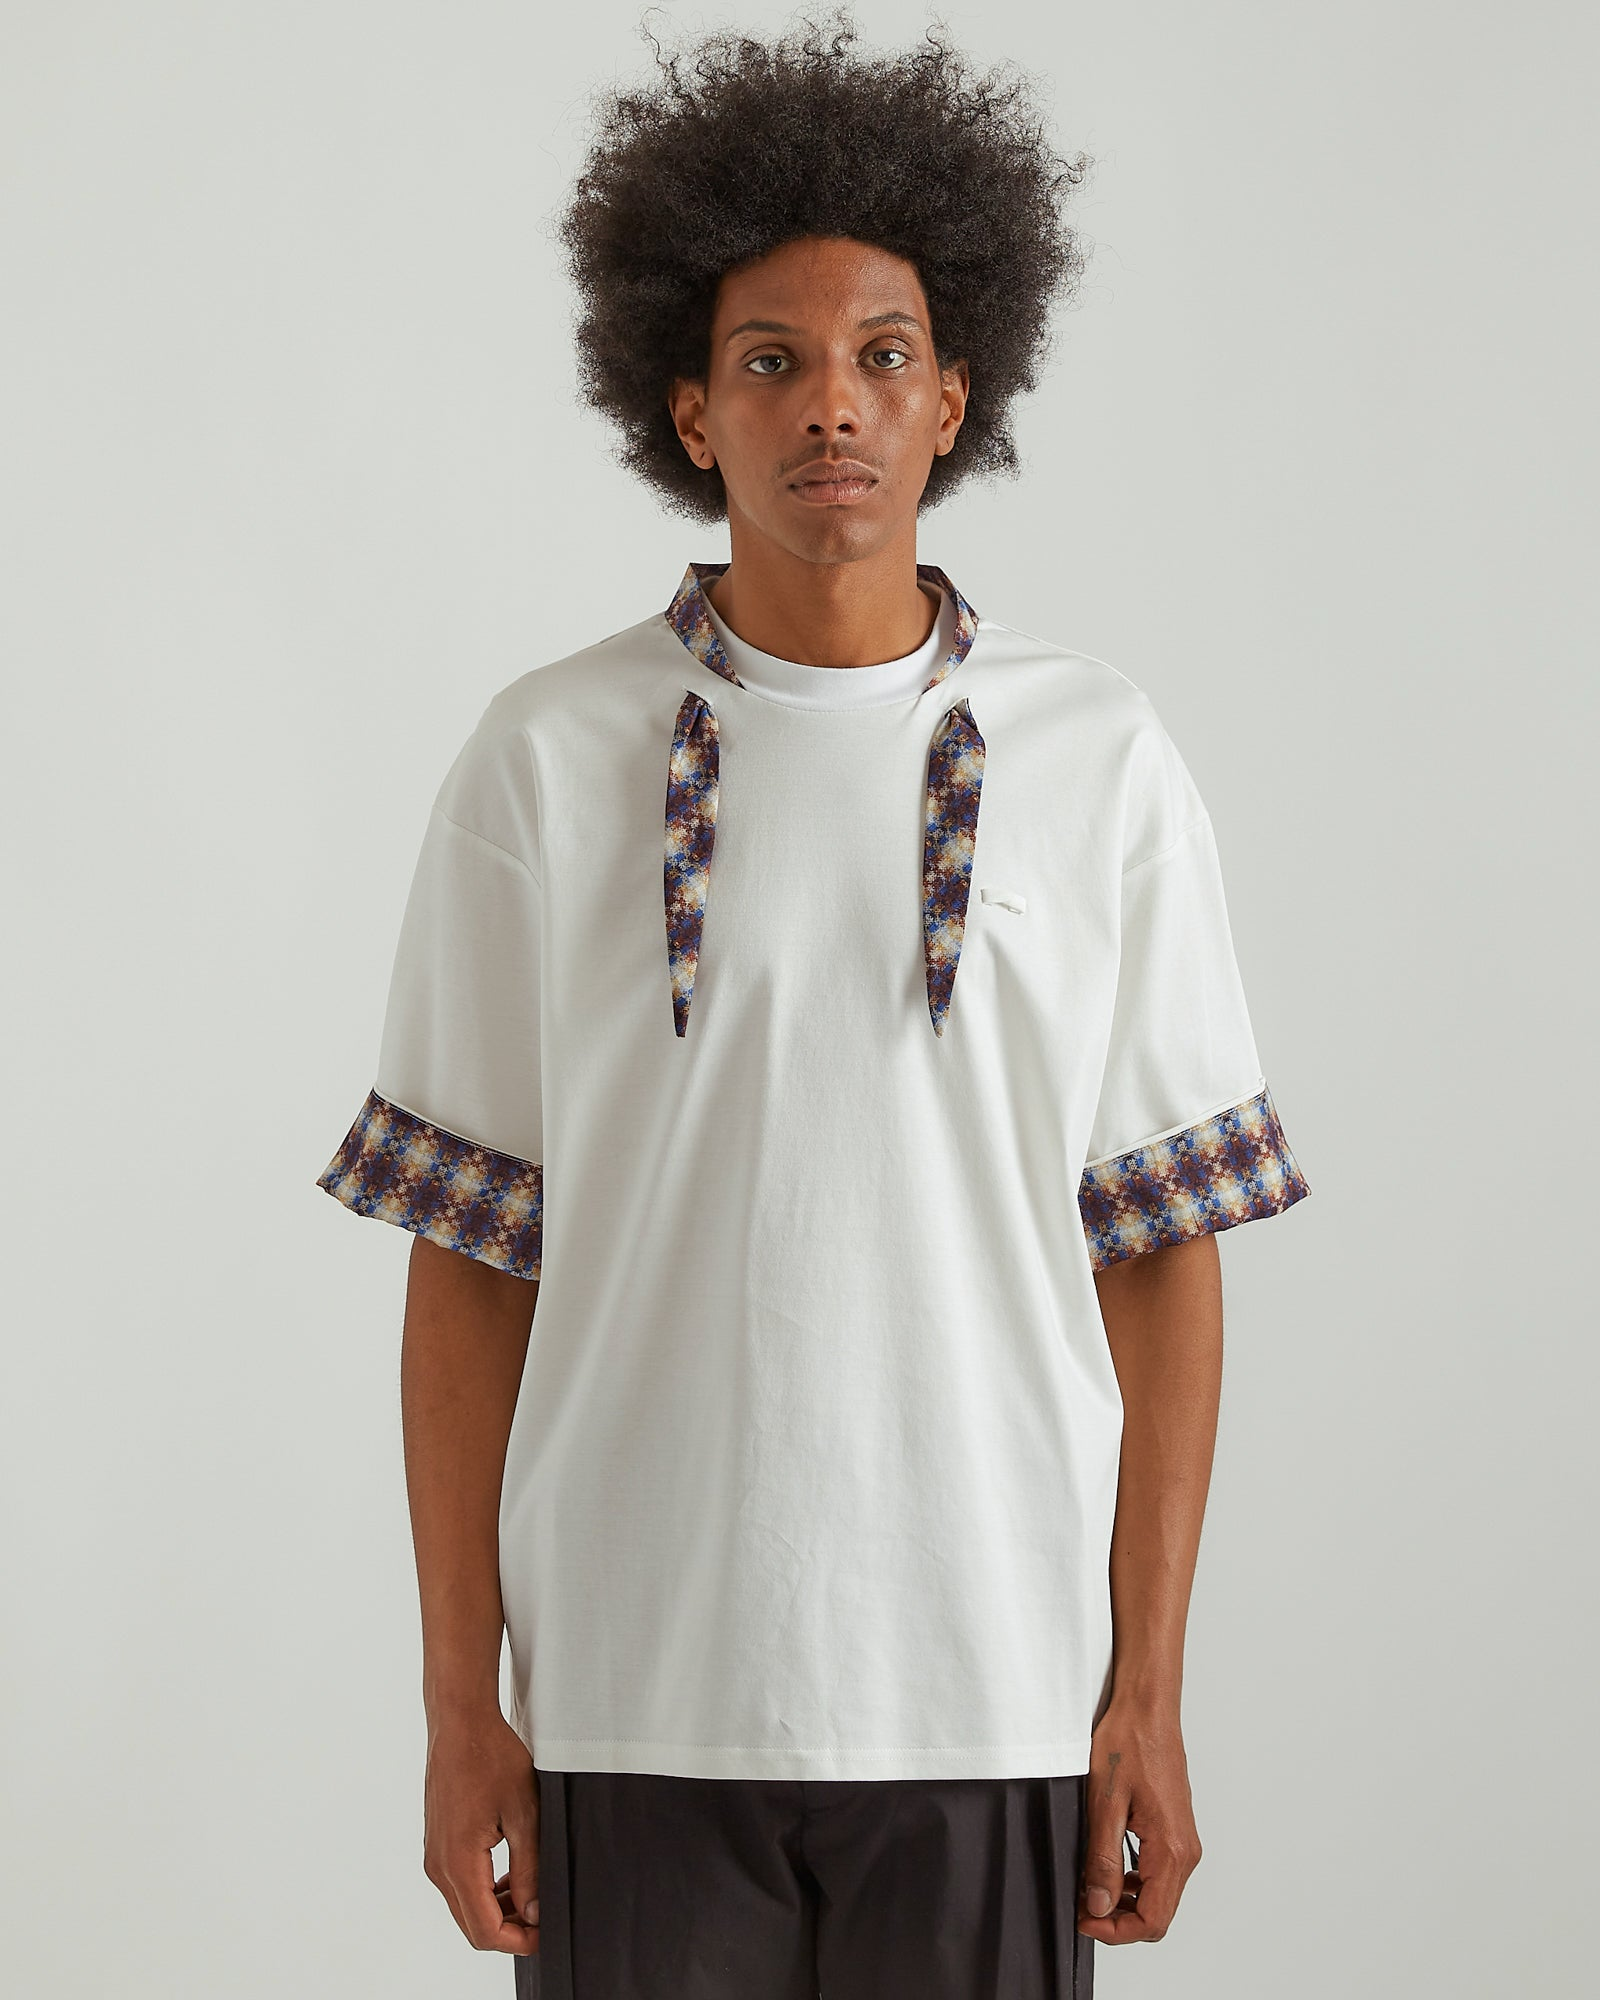 Neck Scarf T-Shirt in White